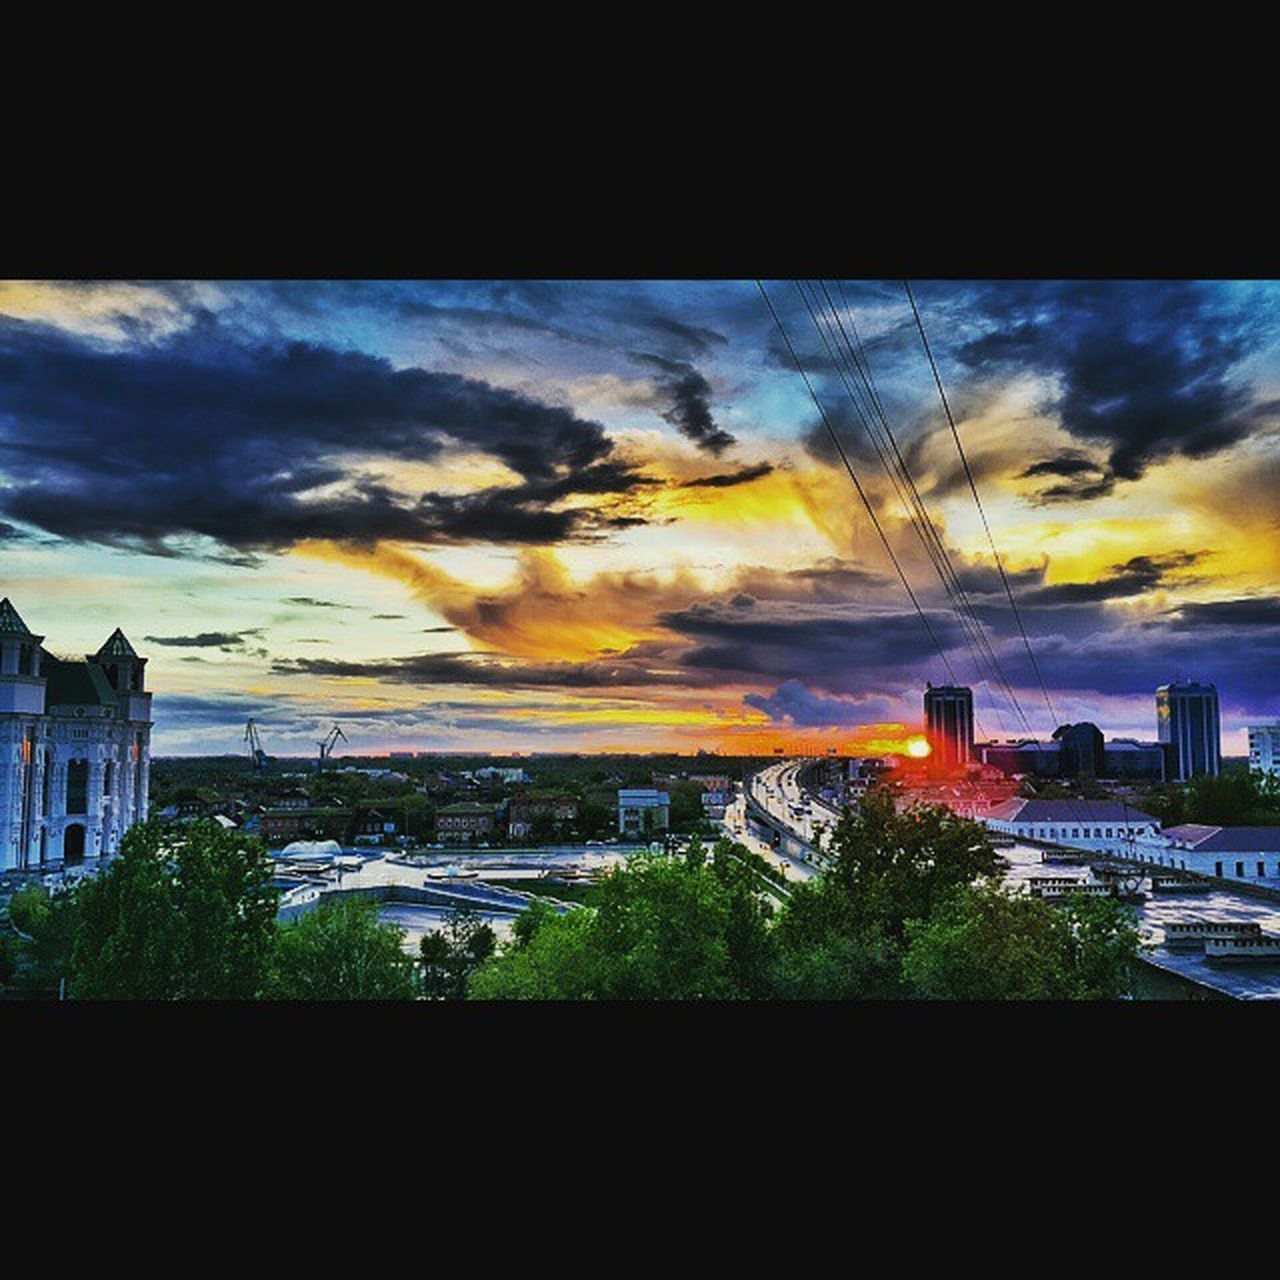 architecture, cloud - sky, built structure, building exterior, sky, dramatic sky, city, sunset, no people, outdoors, cityscape, tree, nature, travel destinations, skyscraper, urban skyline, scenics, multi colored, beauty in nature, day